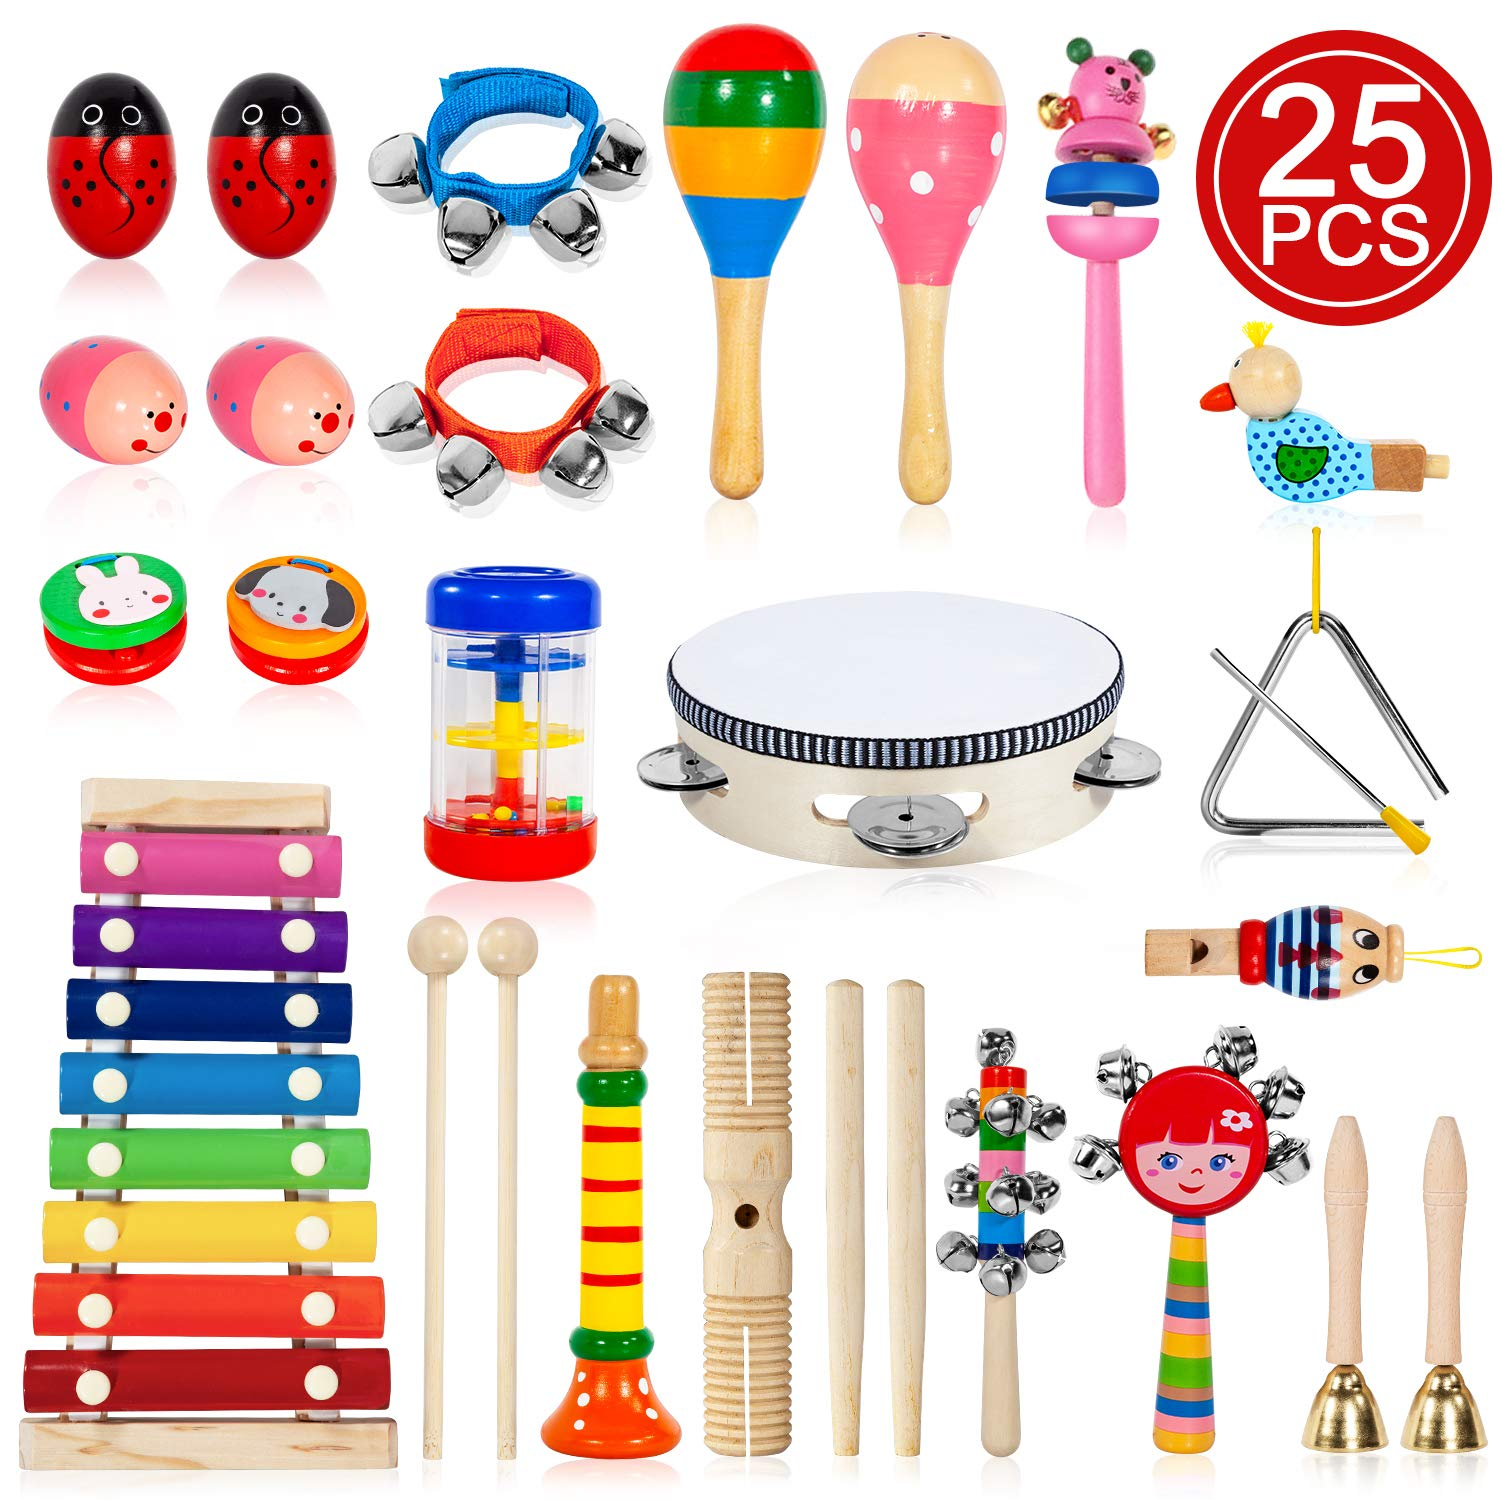 TAIMASI Kids Musical Instruments, 25PCS 18 Types Wooden Percussion Instruments Tambourine Xylophone Toys for Kids Children, Preschool Education Early Learning Musical Toy for Boys and Girls by TAIMASI